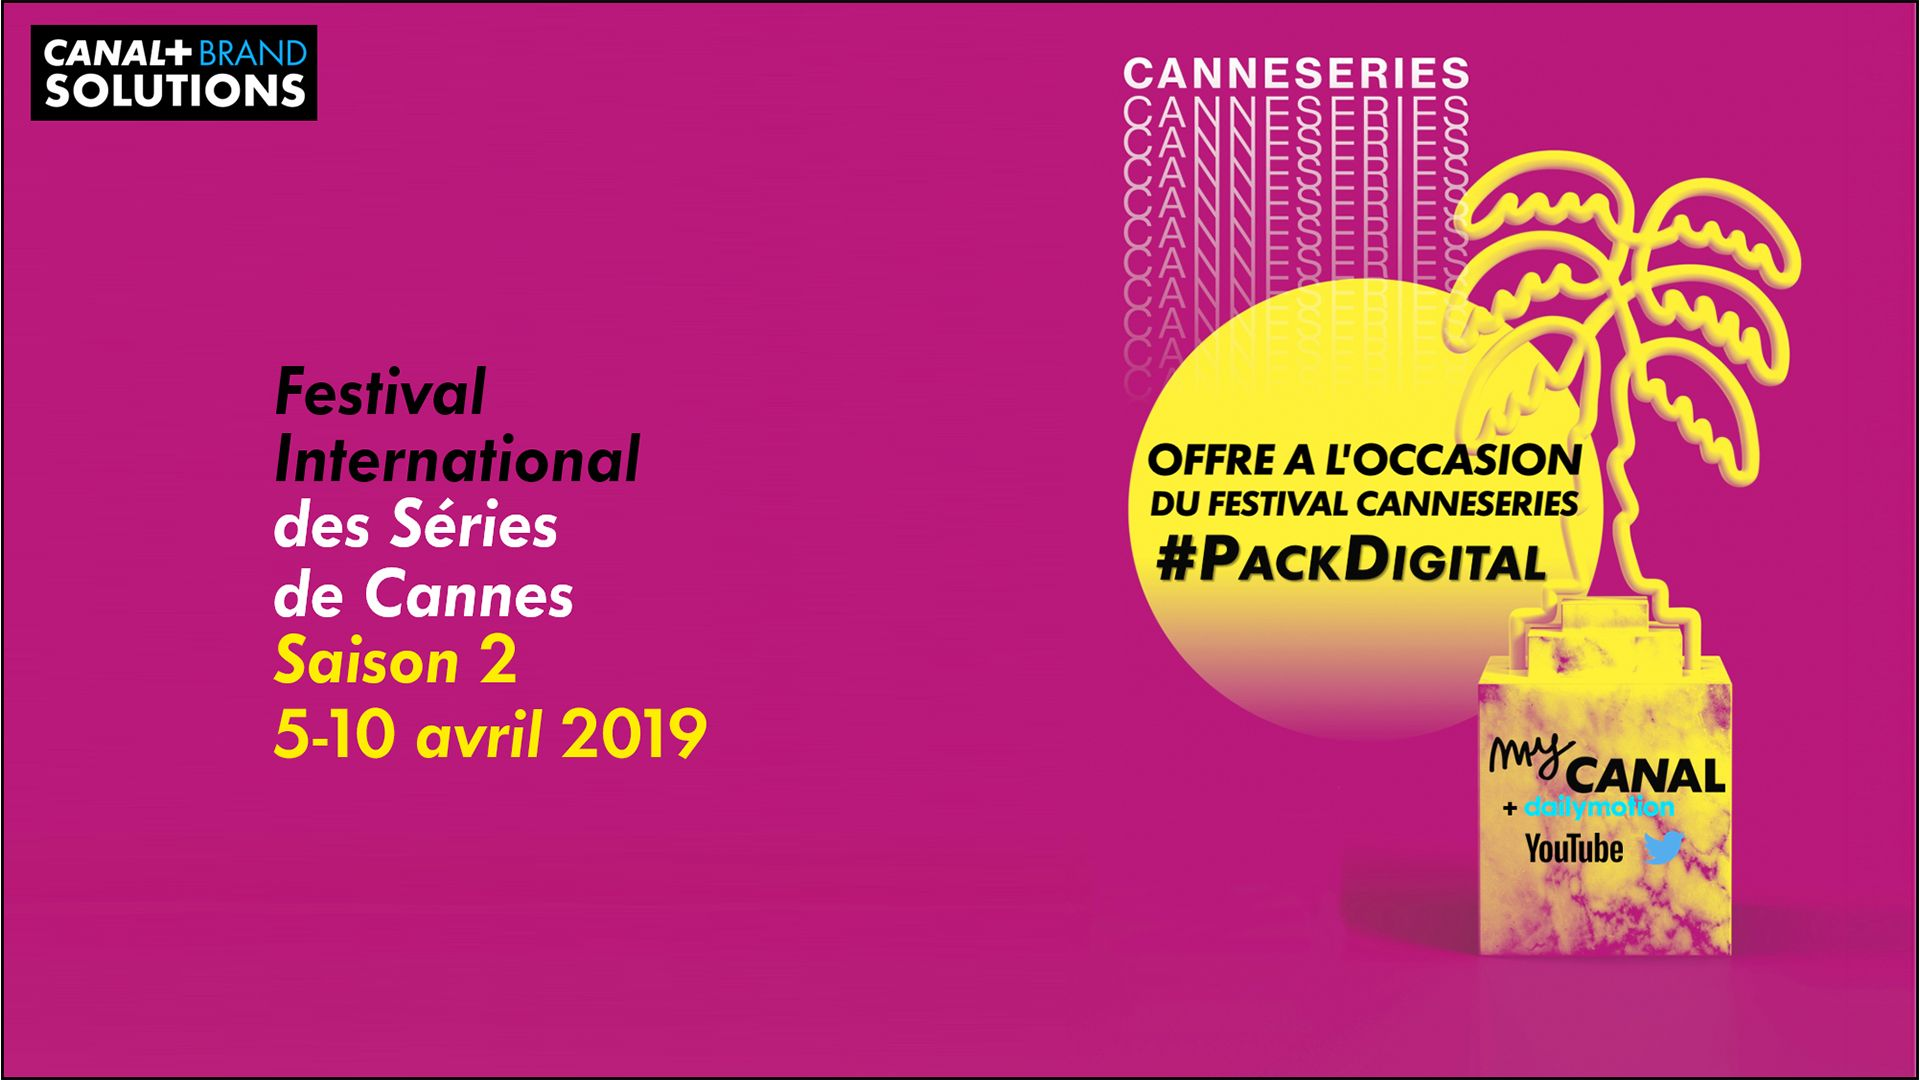 Pack digital Canneseries 2019